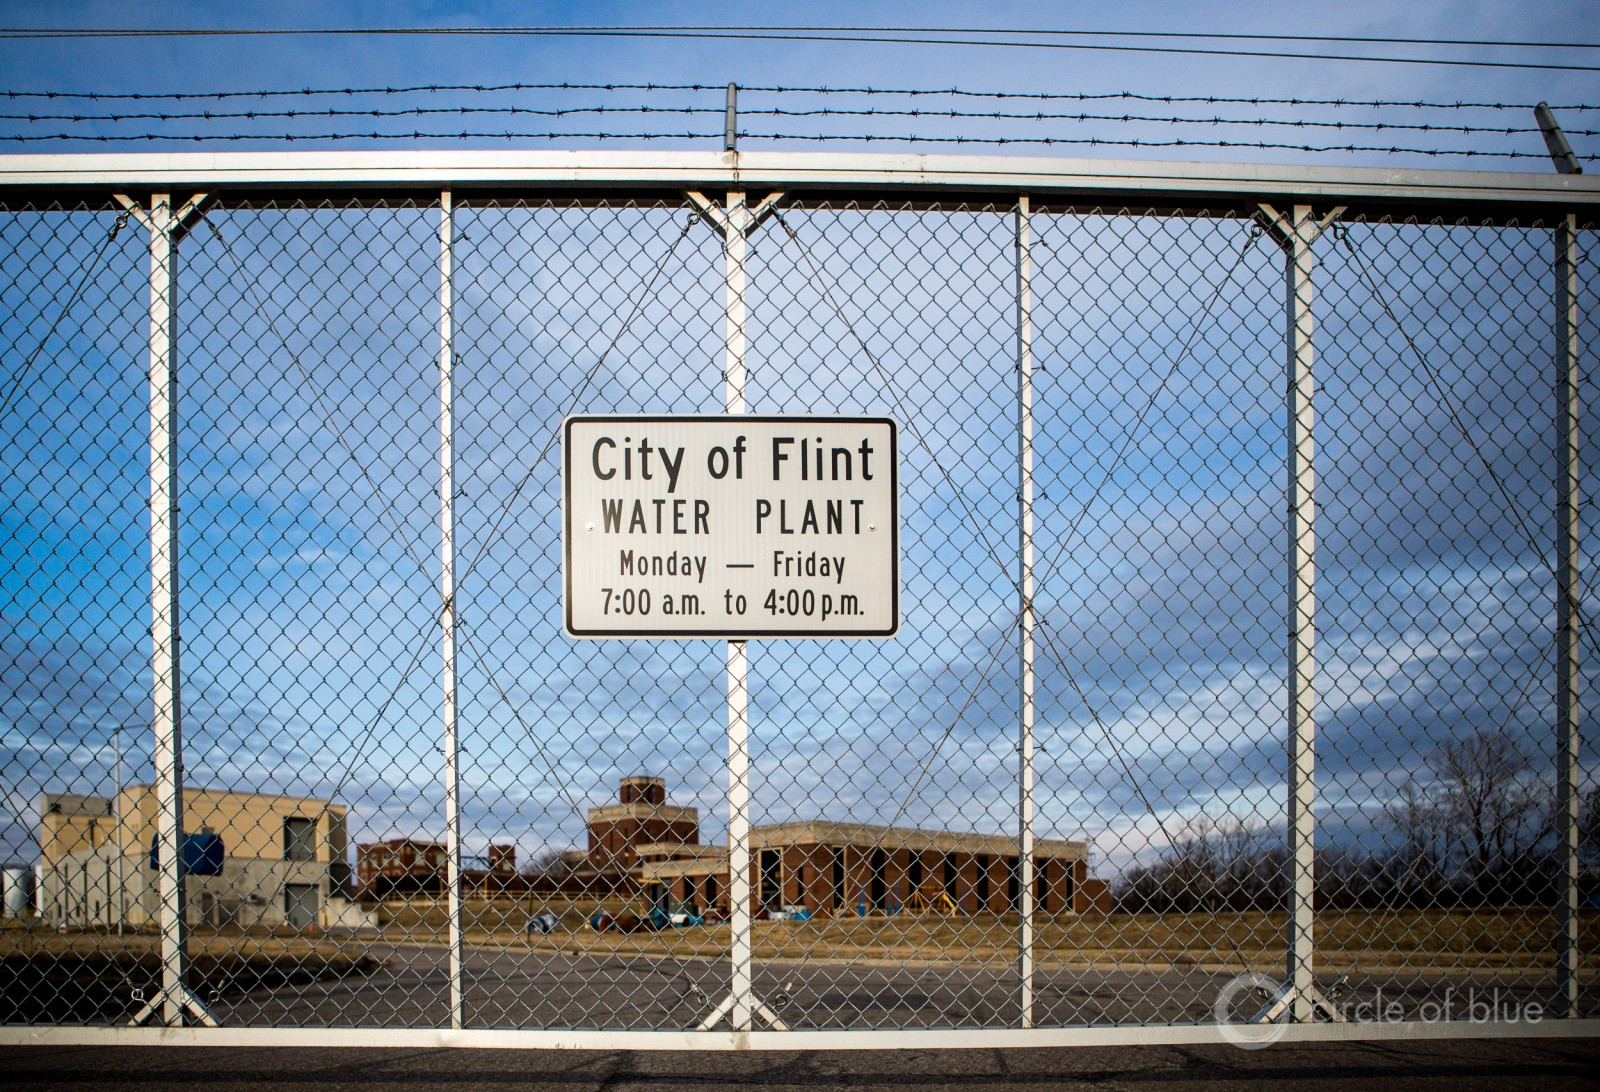 Flint Water Crisis is Unexpected Opening for City Water ...